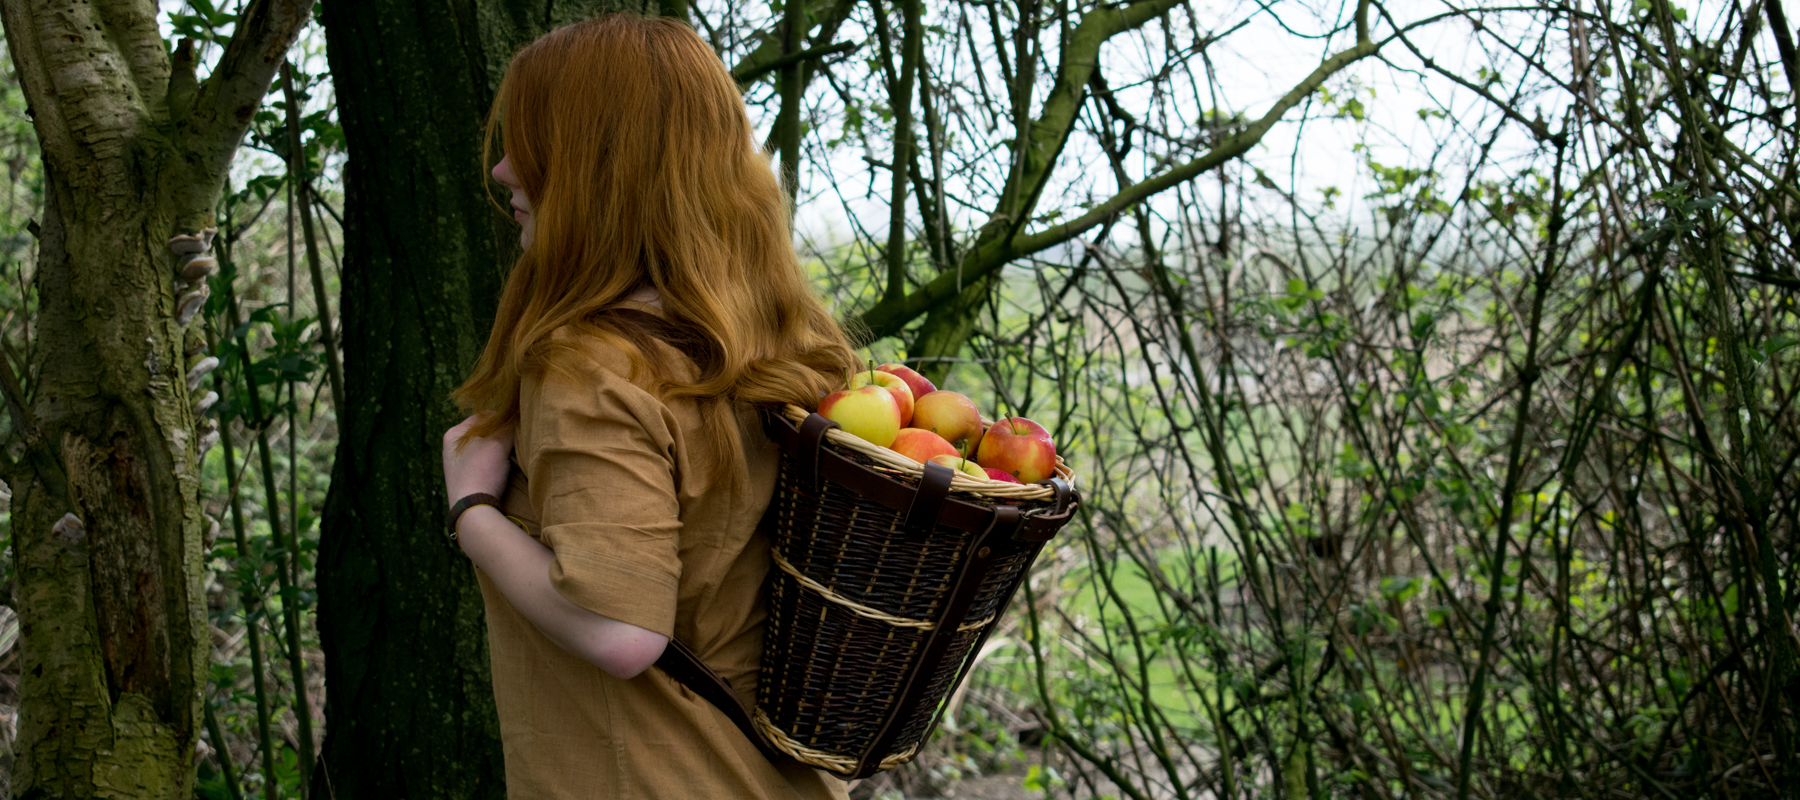 running-with-sheep-sheepbushcraft-basket-pack-how-to-diy-leather-apple-1